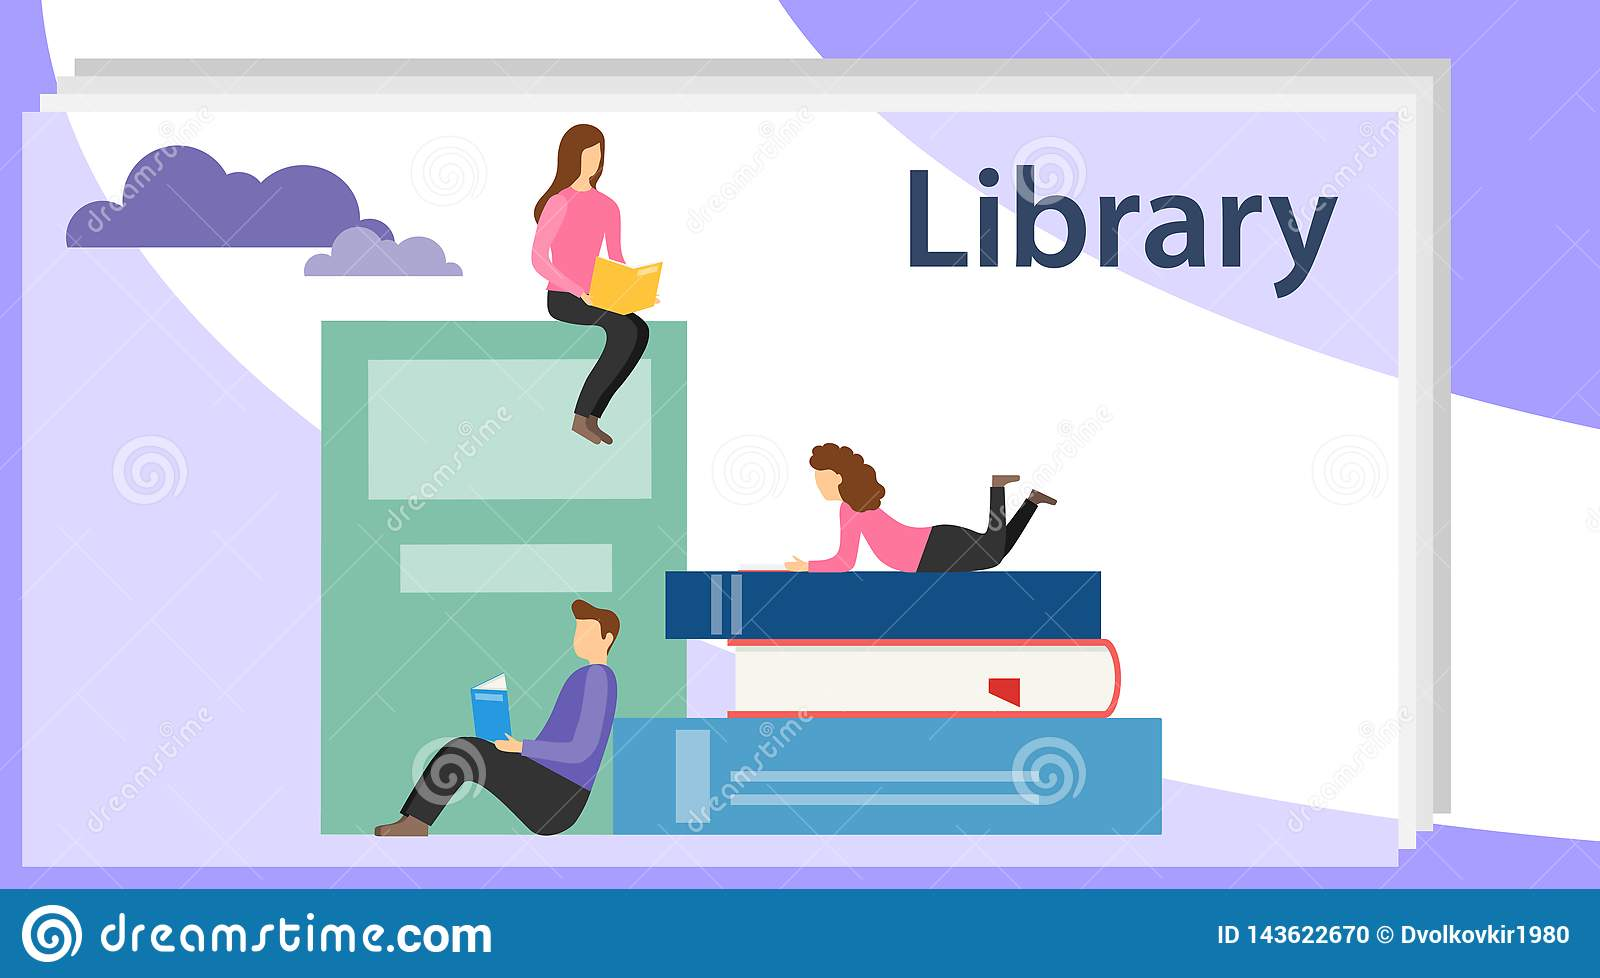 Book library concept banner with characters. Media book library concept. E-book, reading an ebook to study on e-library at school